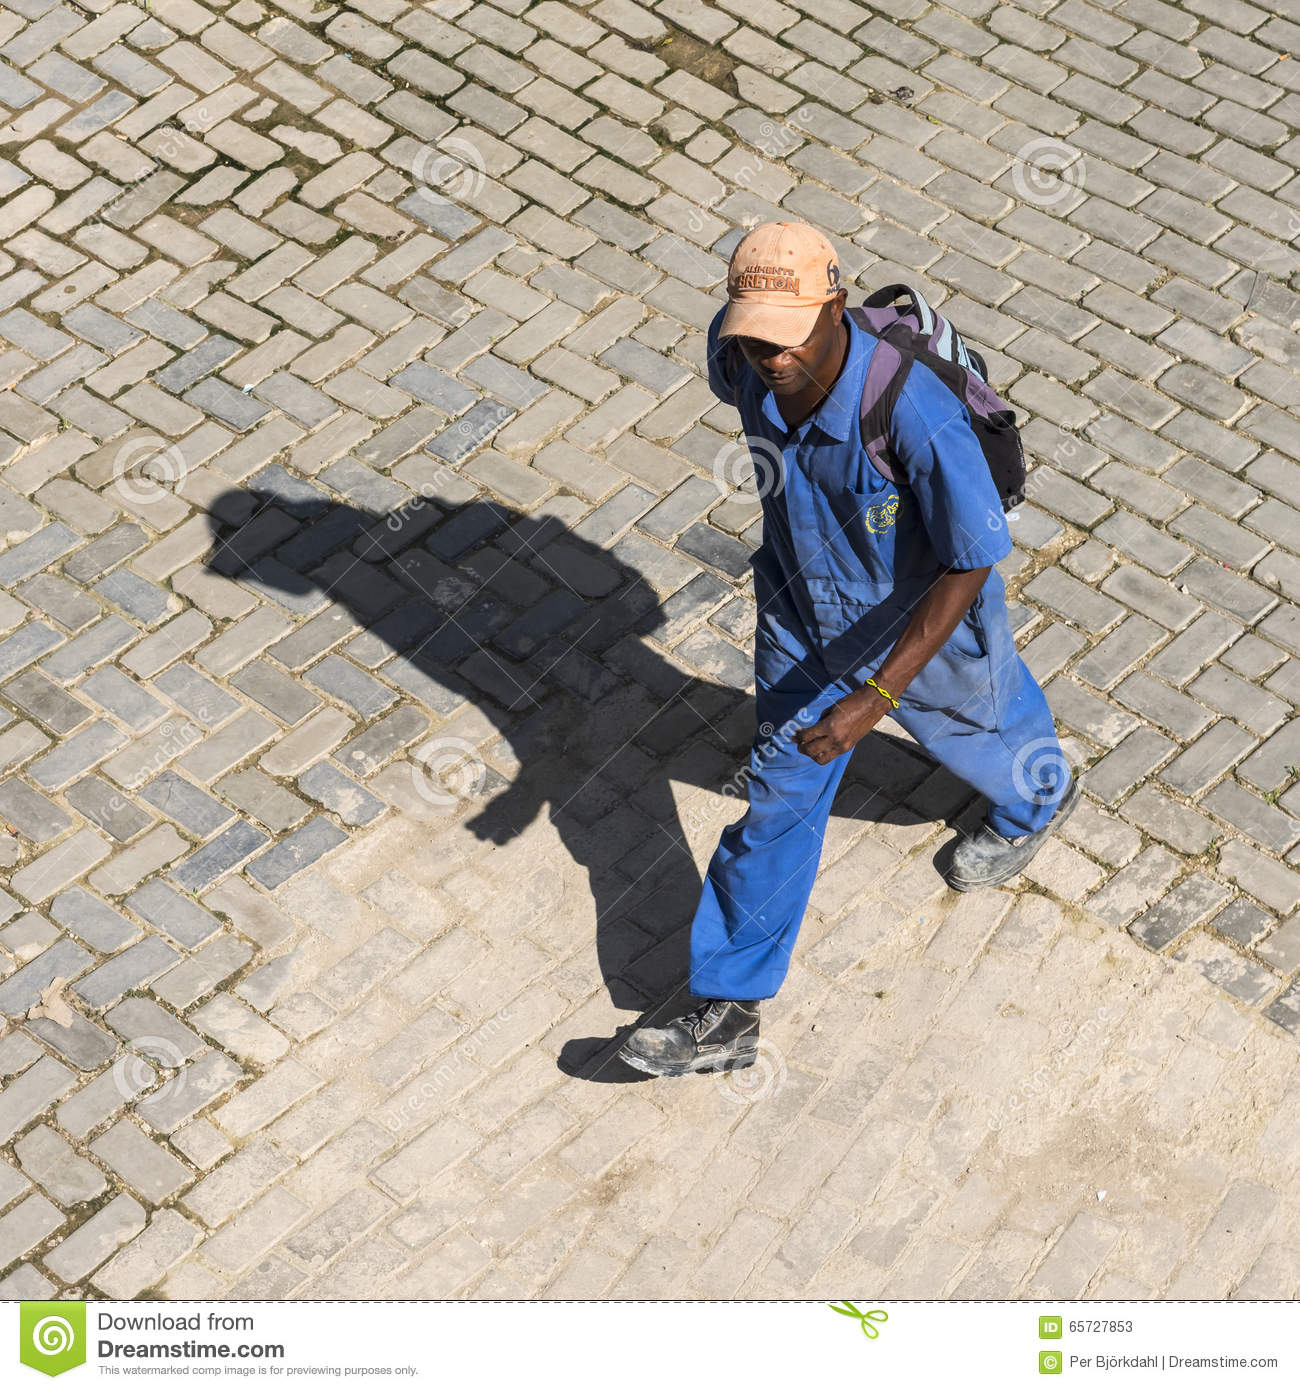 Cuban worker on his way to work